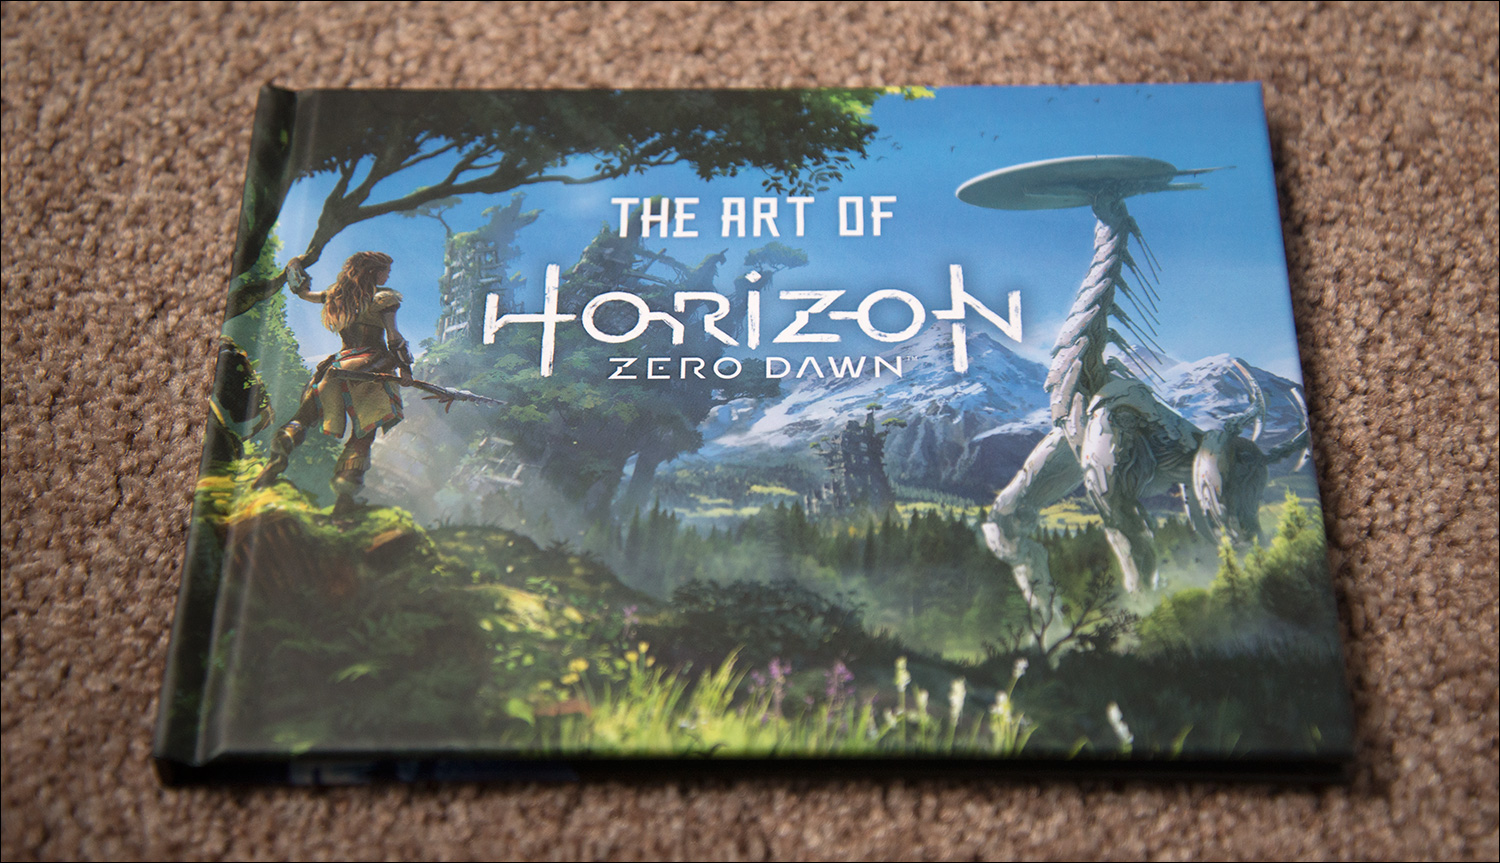 Horizon Zero Dawn Limited Edition Video Game Shelf Sony Playstation 4 Collector Lastly Some Downloadable Content Is Also Included An Exclusive Ps4 Theme Two Outfits And Bows The Banuk Traveller Pack Carja Trader